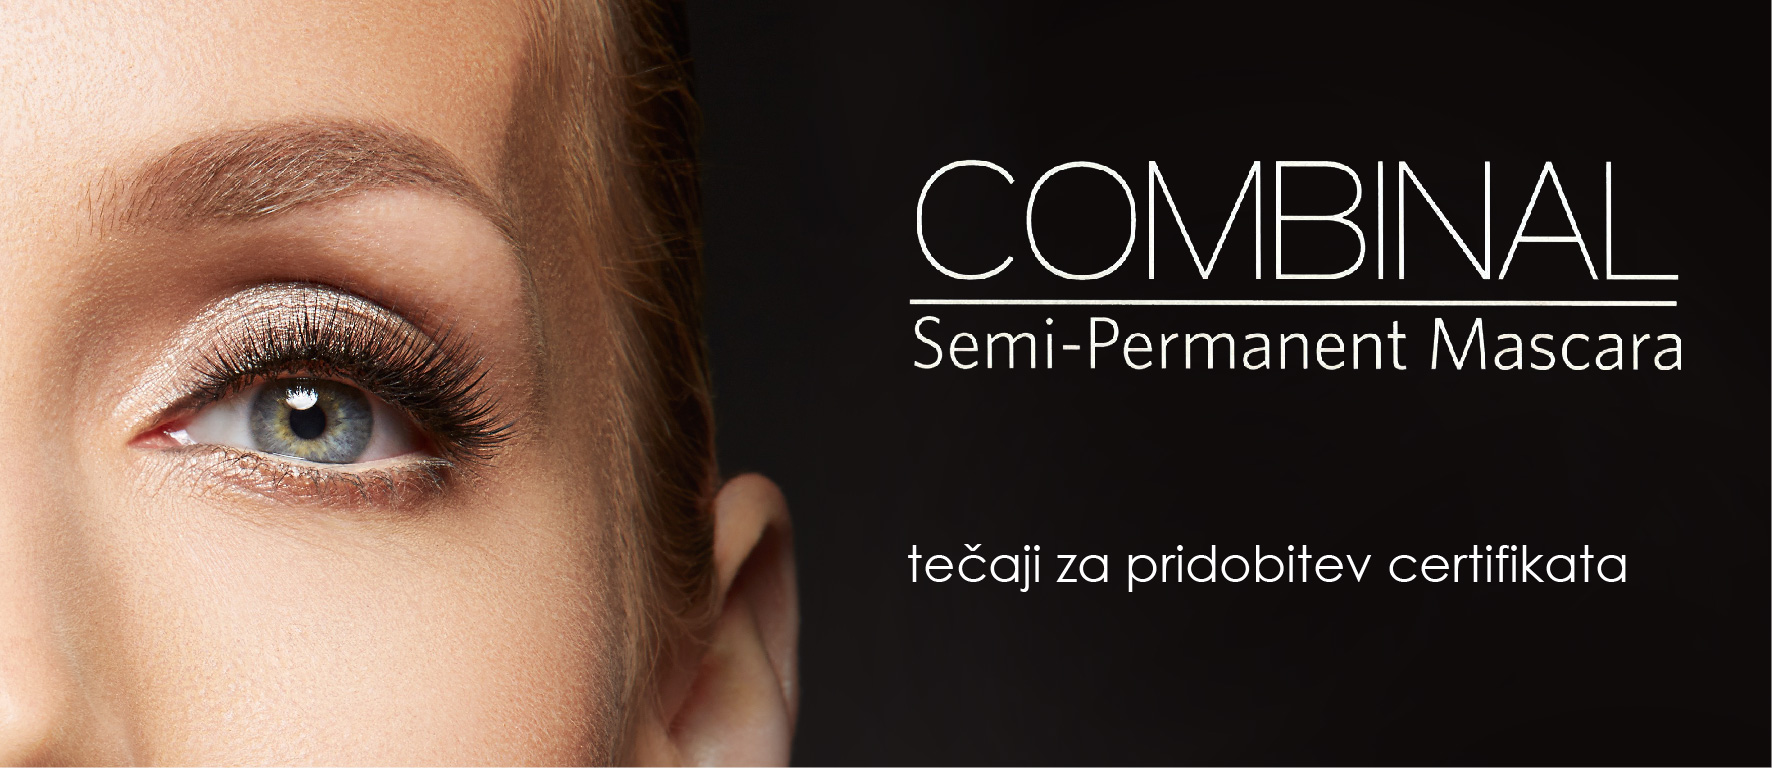 Tečaj Semi-Permanent Mascara